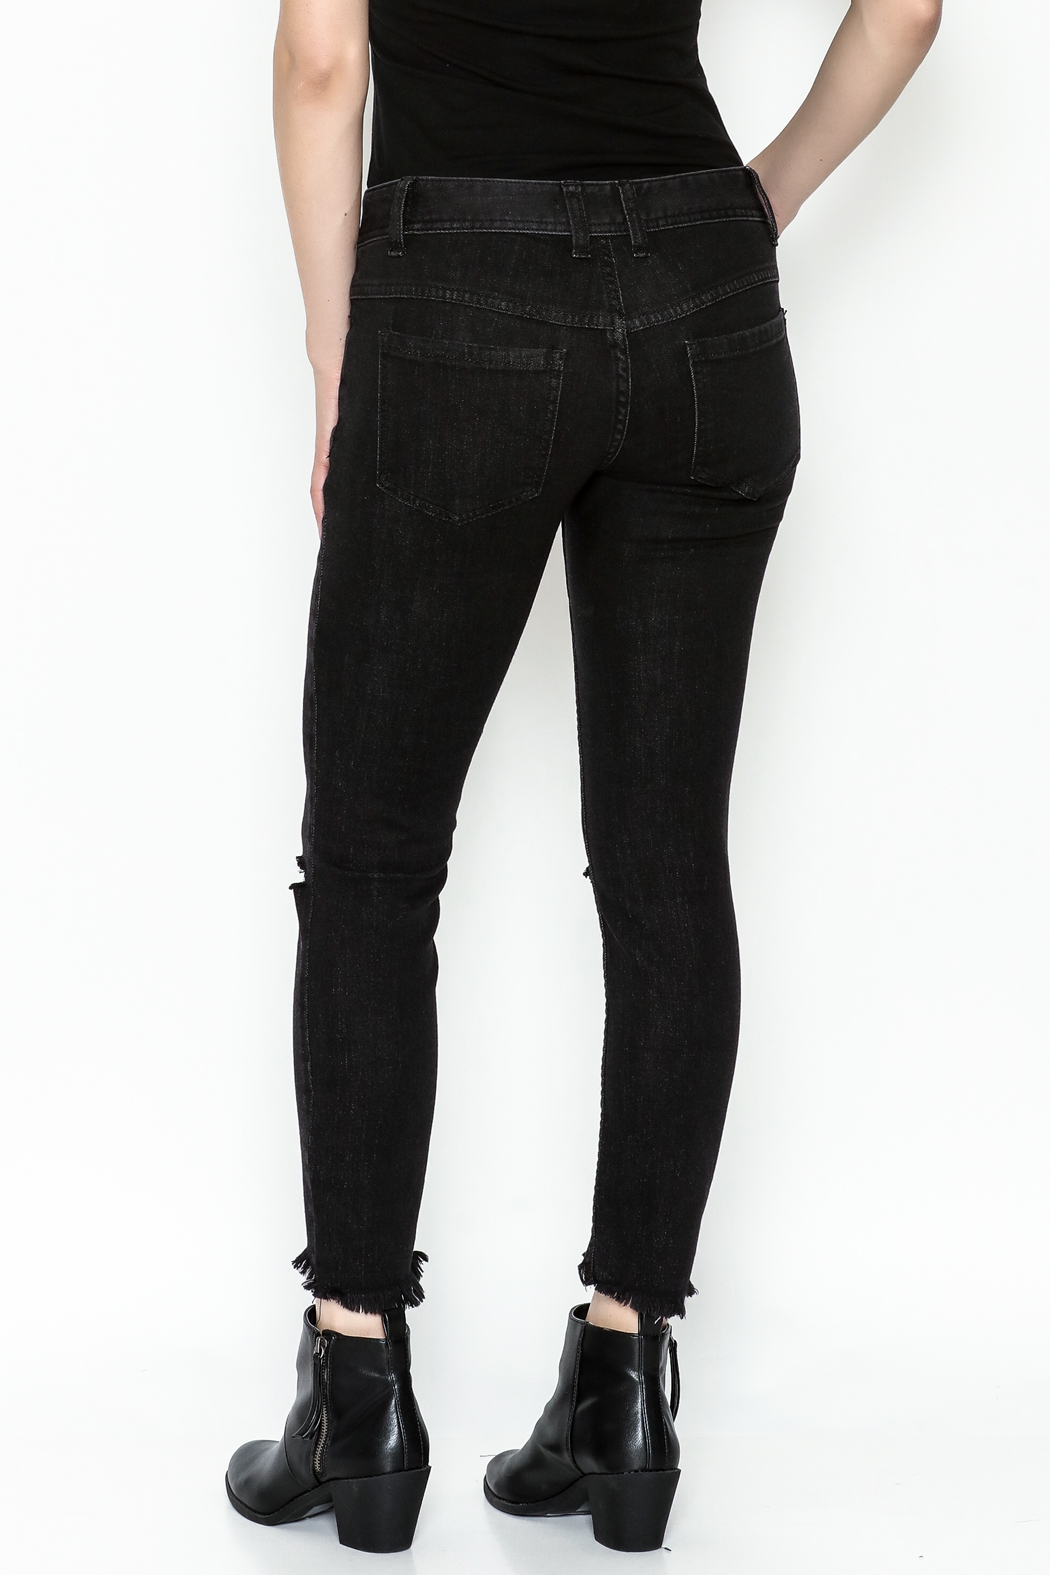 Free People Ripped Knee Skinny Jeans - Back Cropped Image